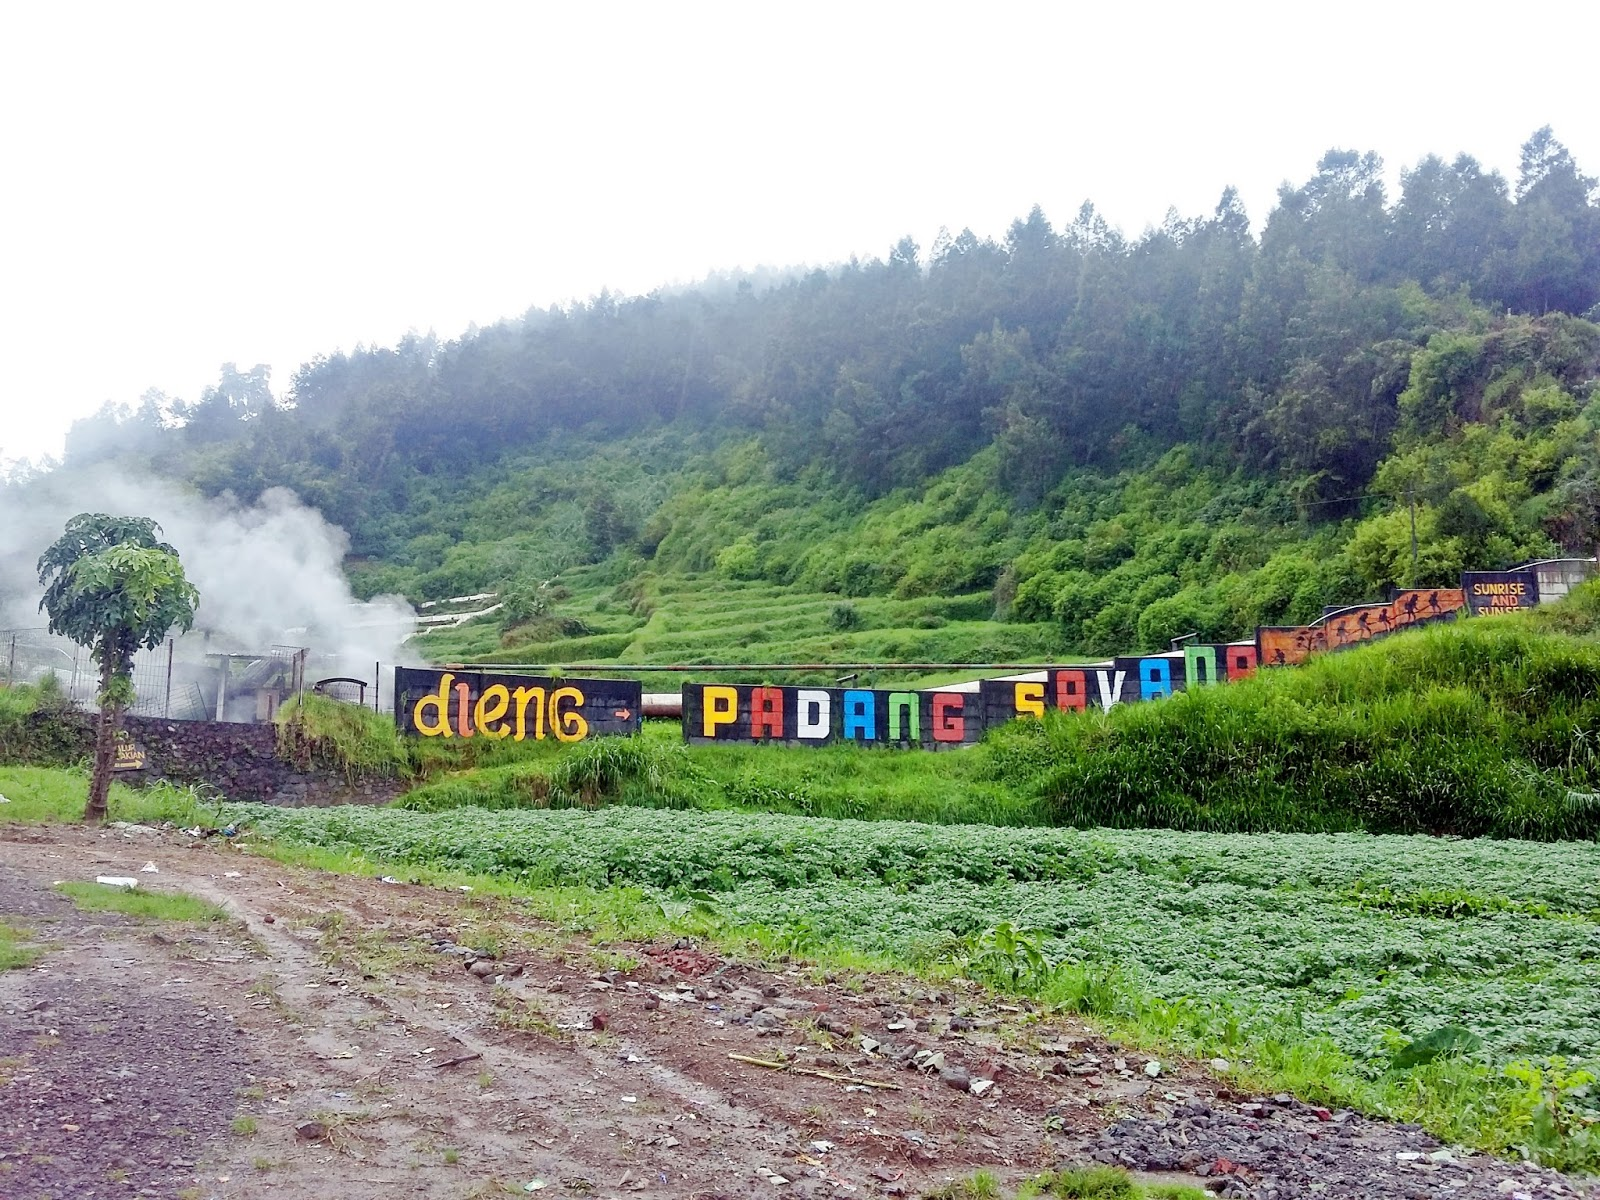 Image result for padang savana sumurup dieng